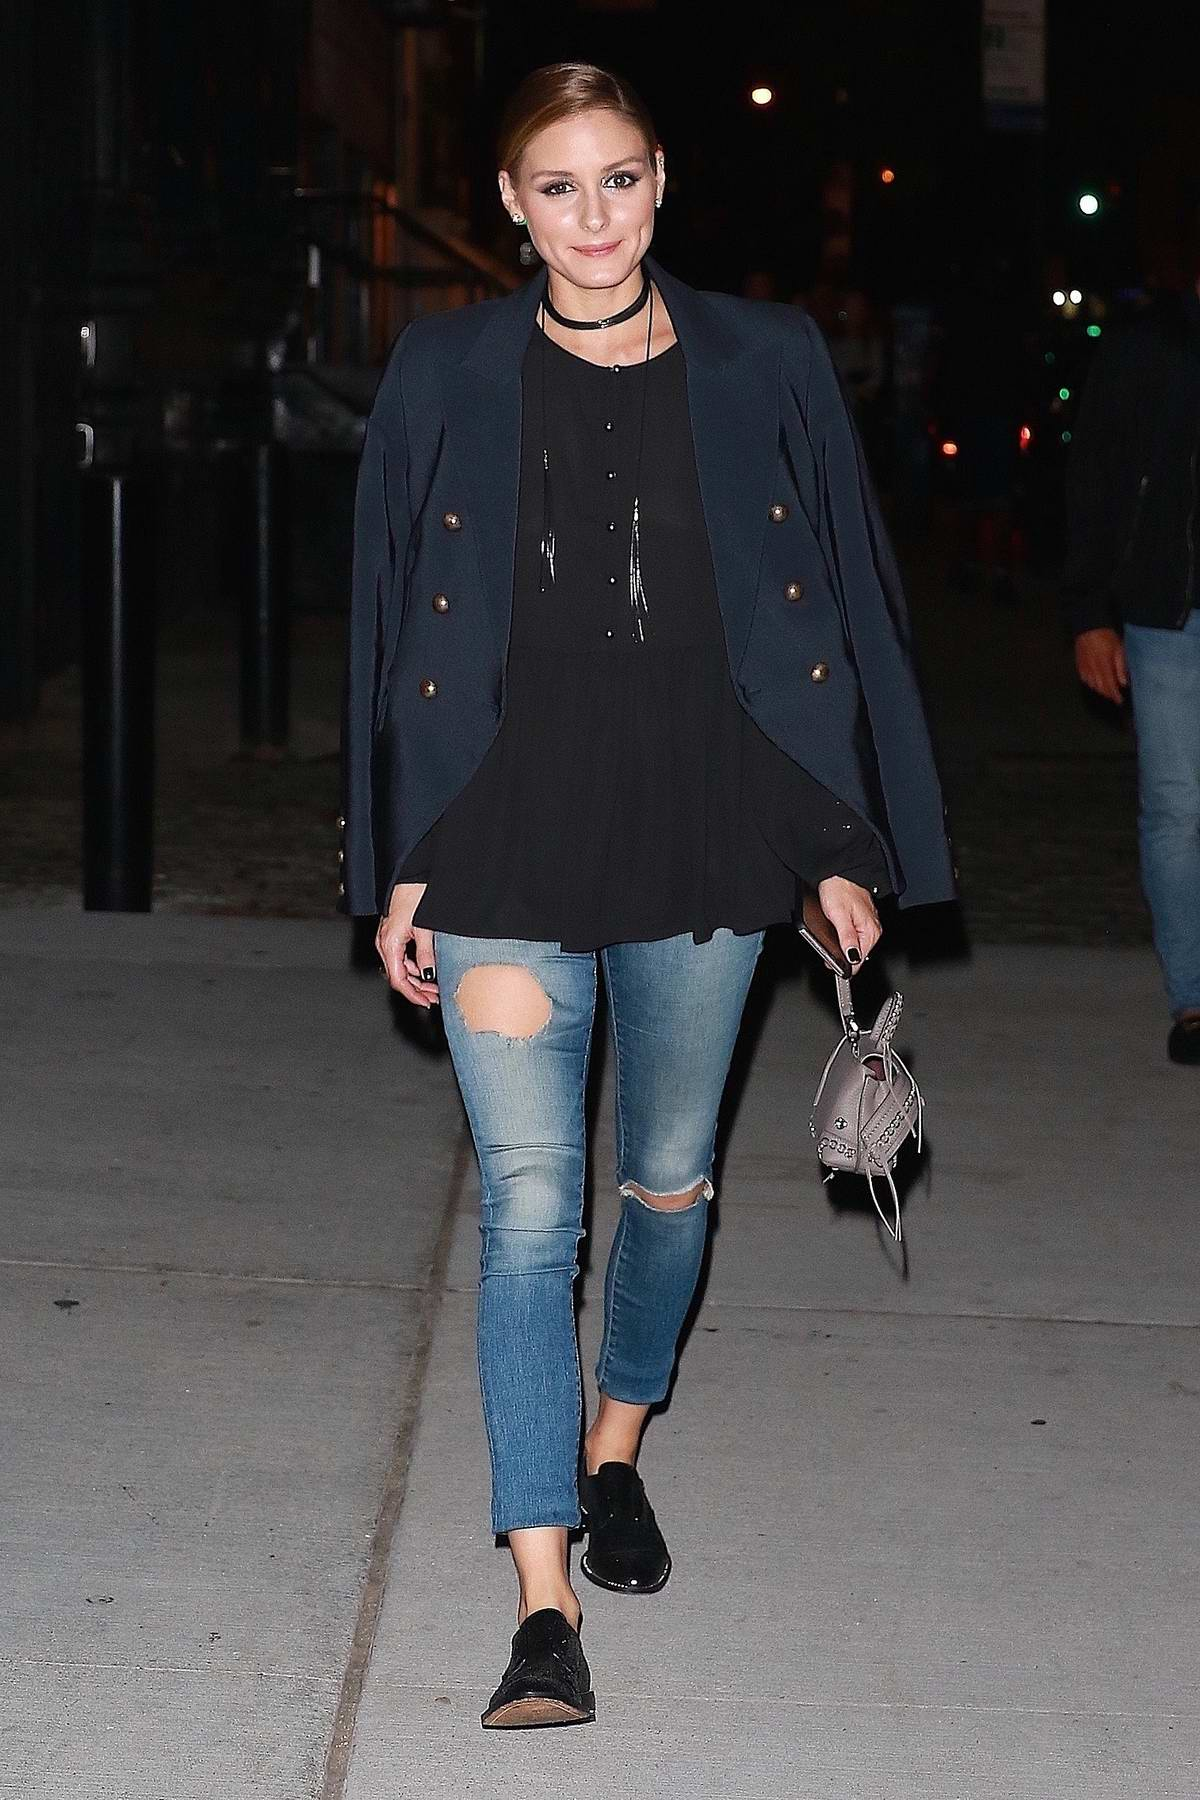 Olivia Palermo and husband Johannes Huebl have a dinner date night at BondST Restaurant in New York